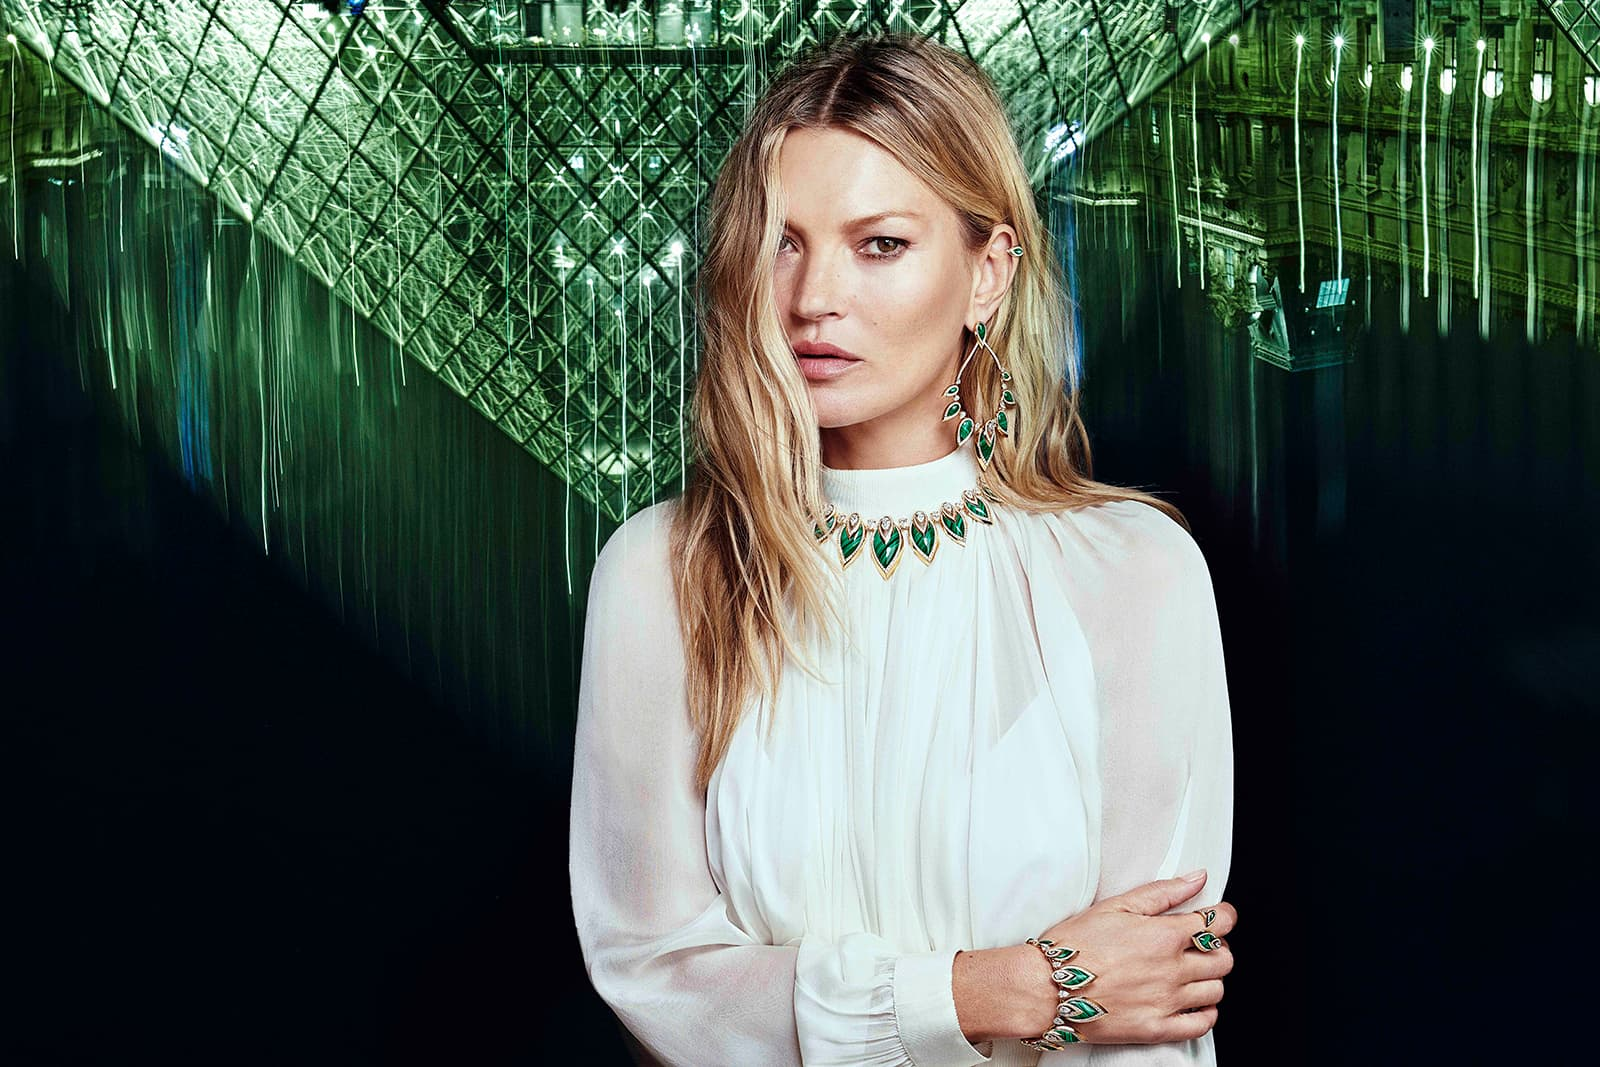 The Messika by Kate Moss collection sees the Parisian jeweller use ornamental hard stones like malachite for the first time